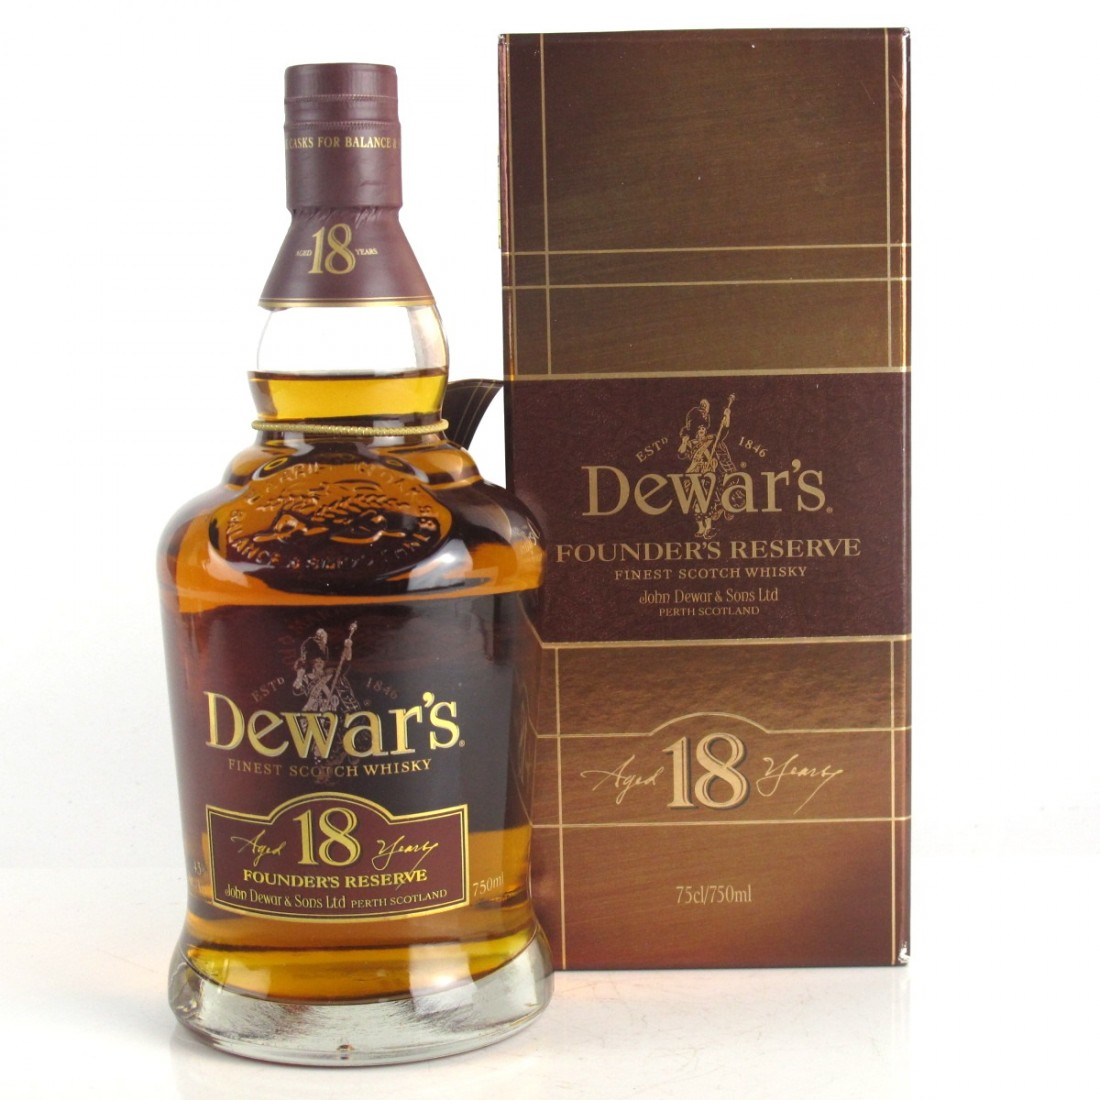 Dewar's 18 Year Old Founder's Reserve 1980s